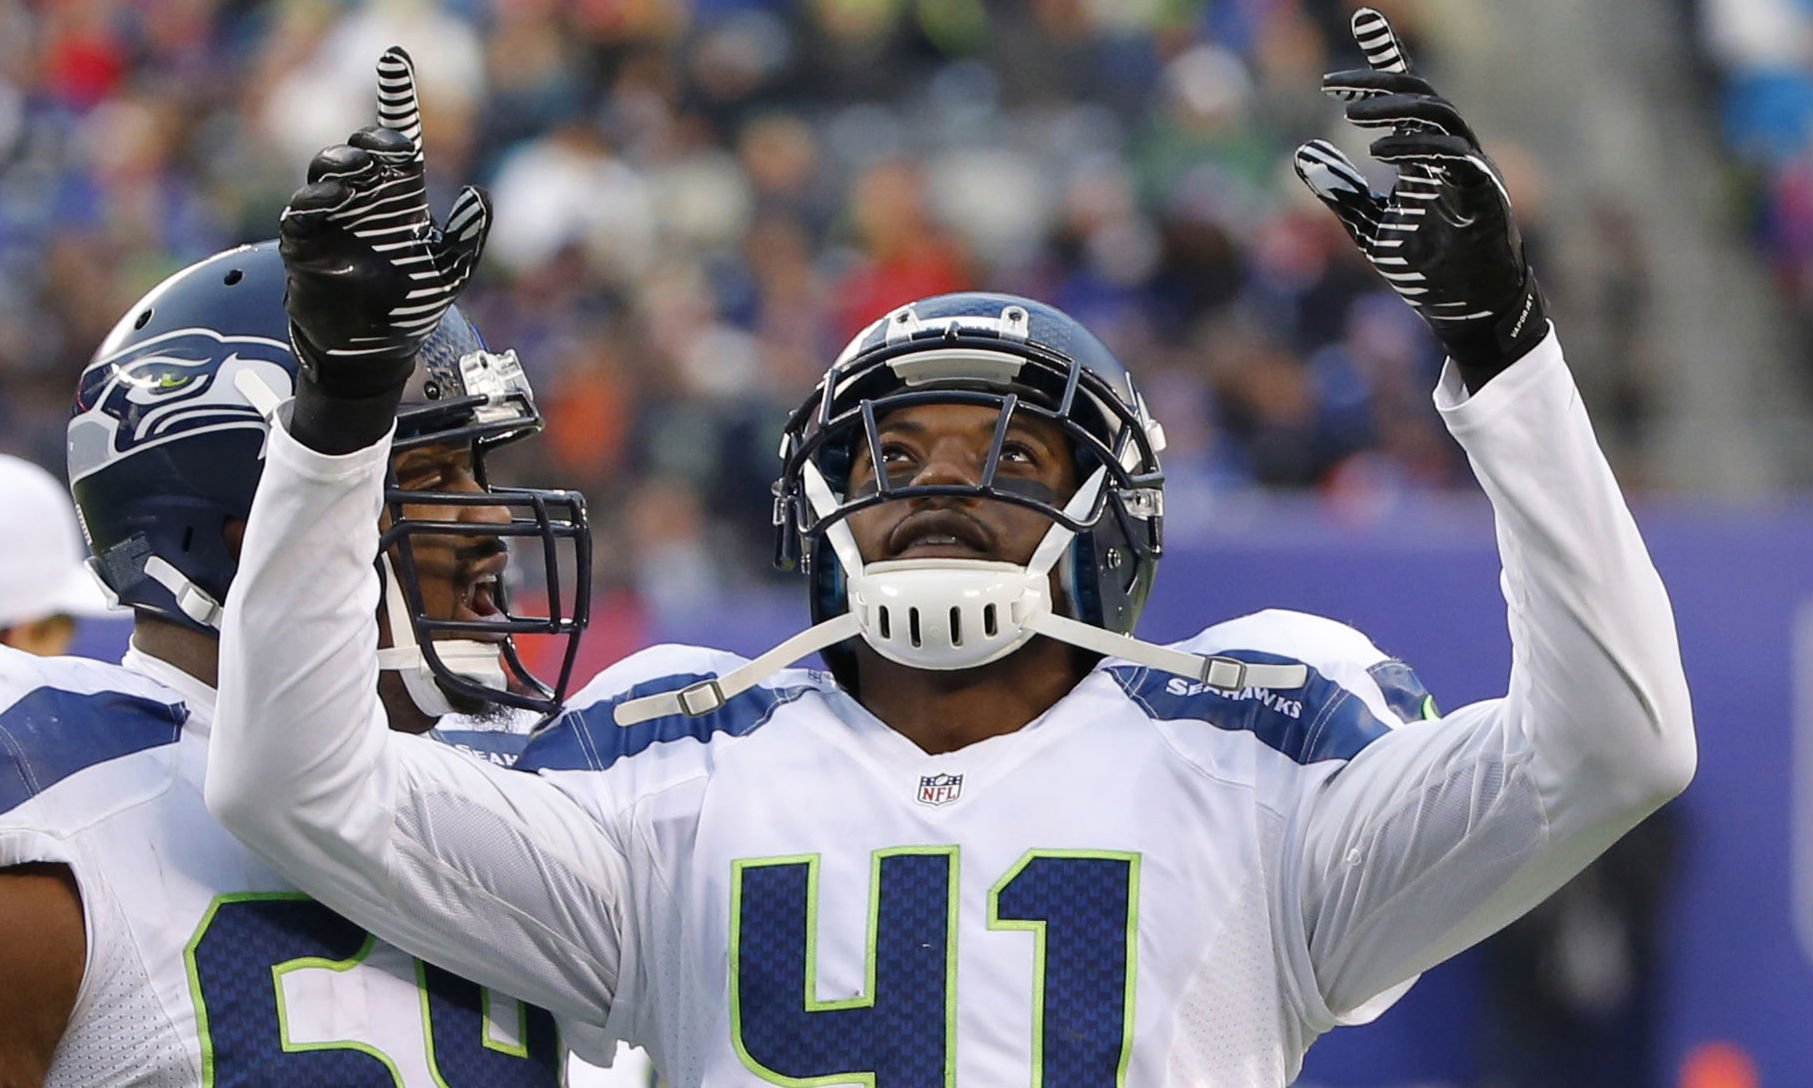 Courtesy of USA Today: Byron Maxwell has not lived up to expectations in 2014.